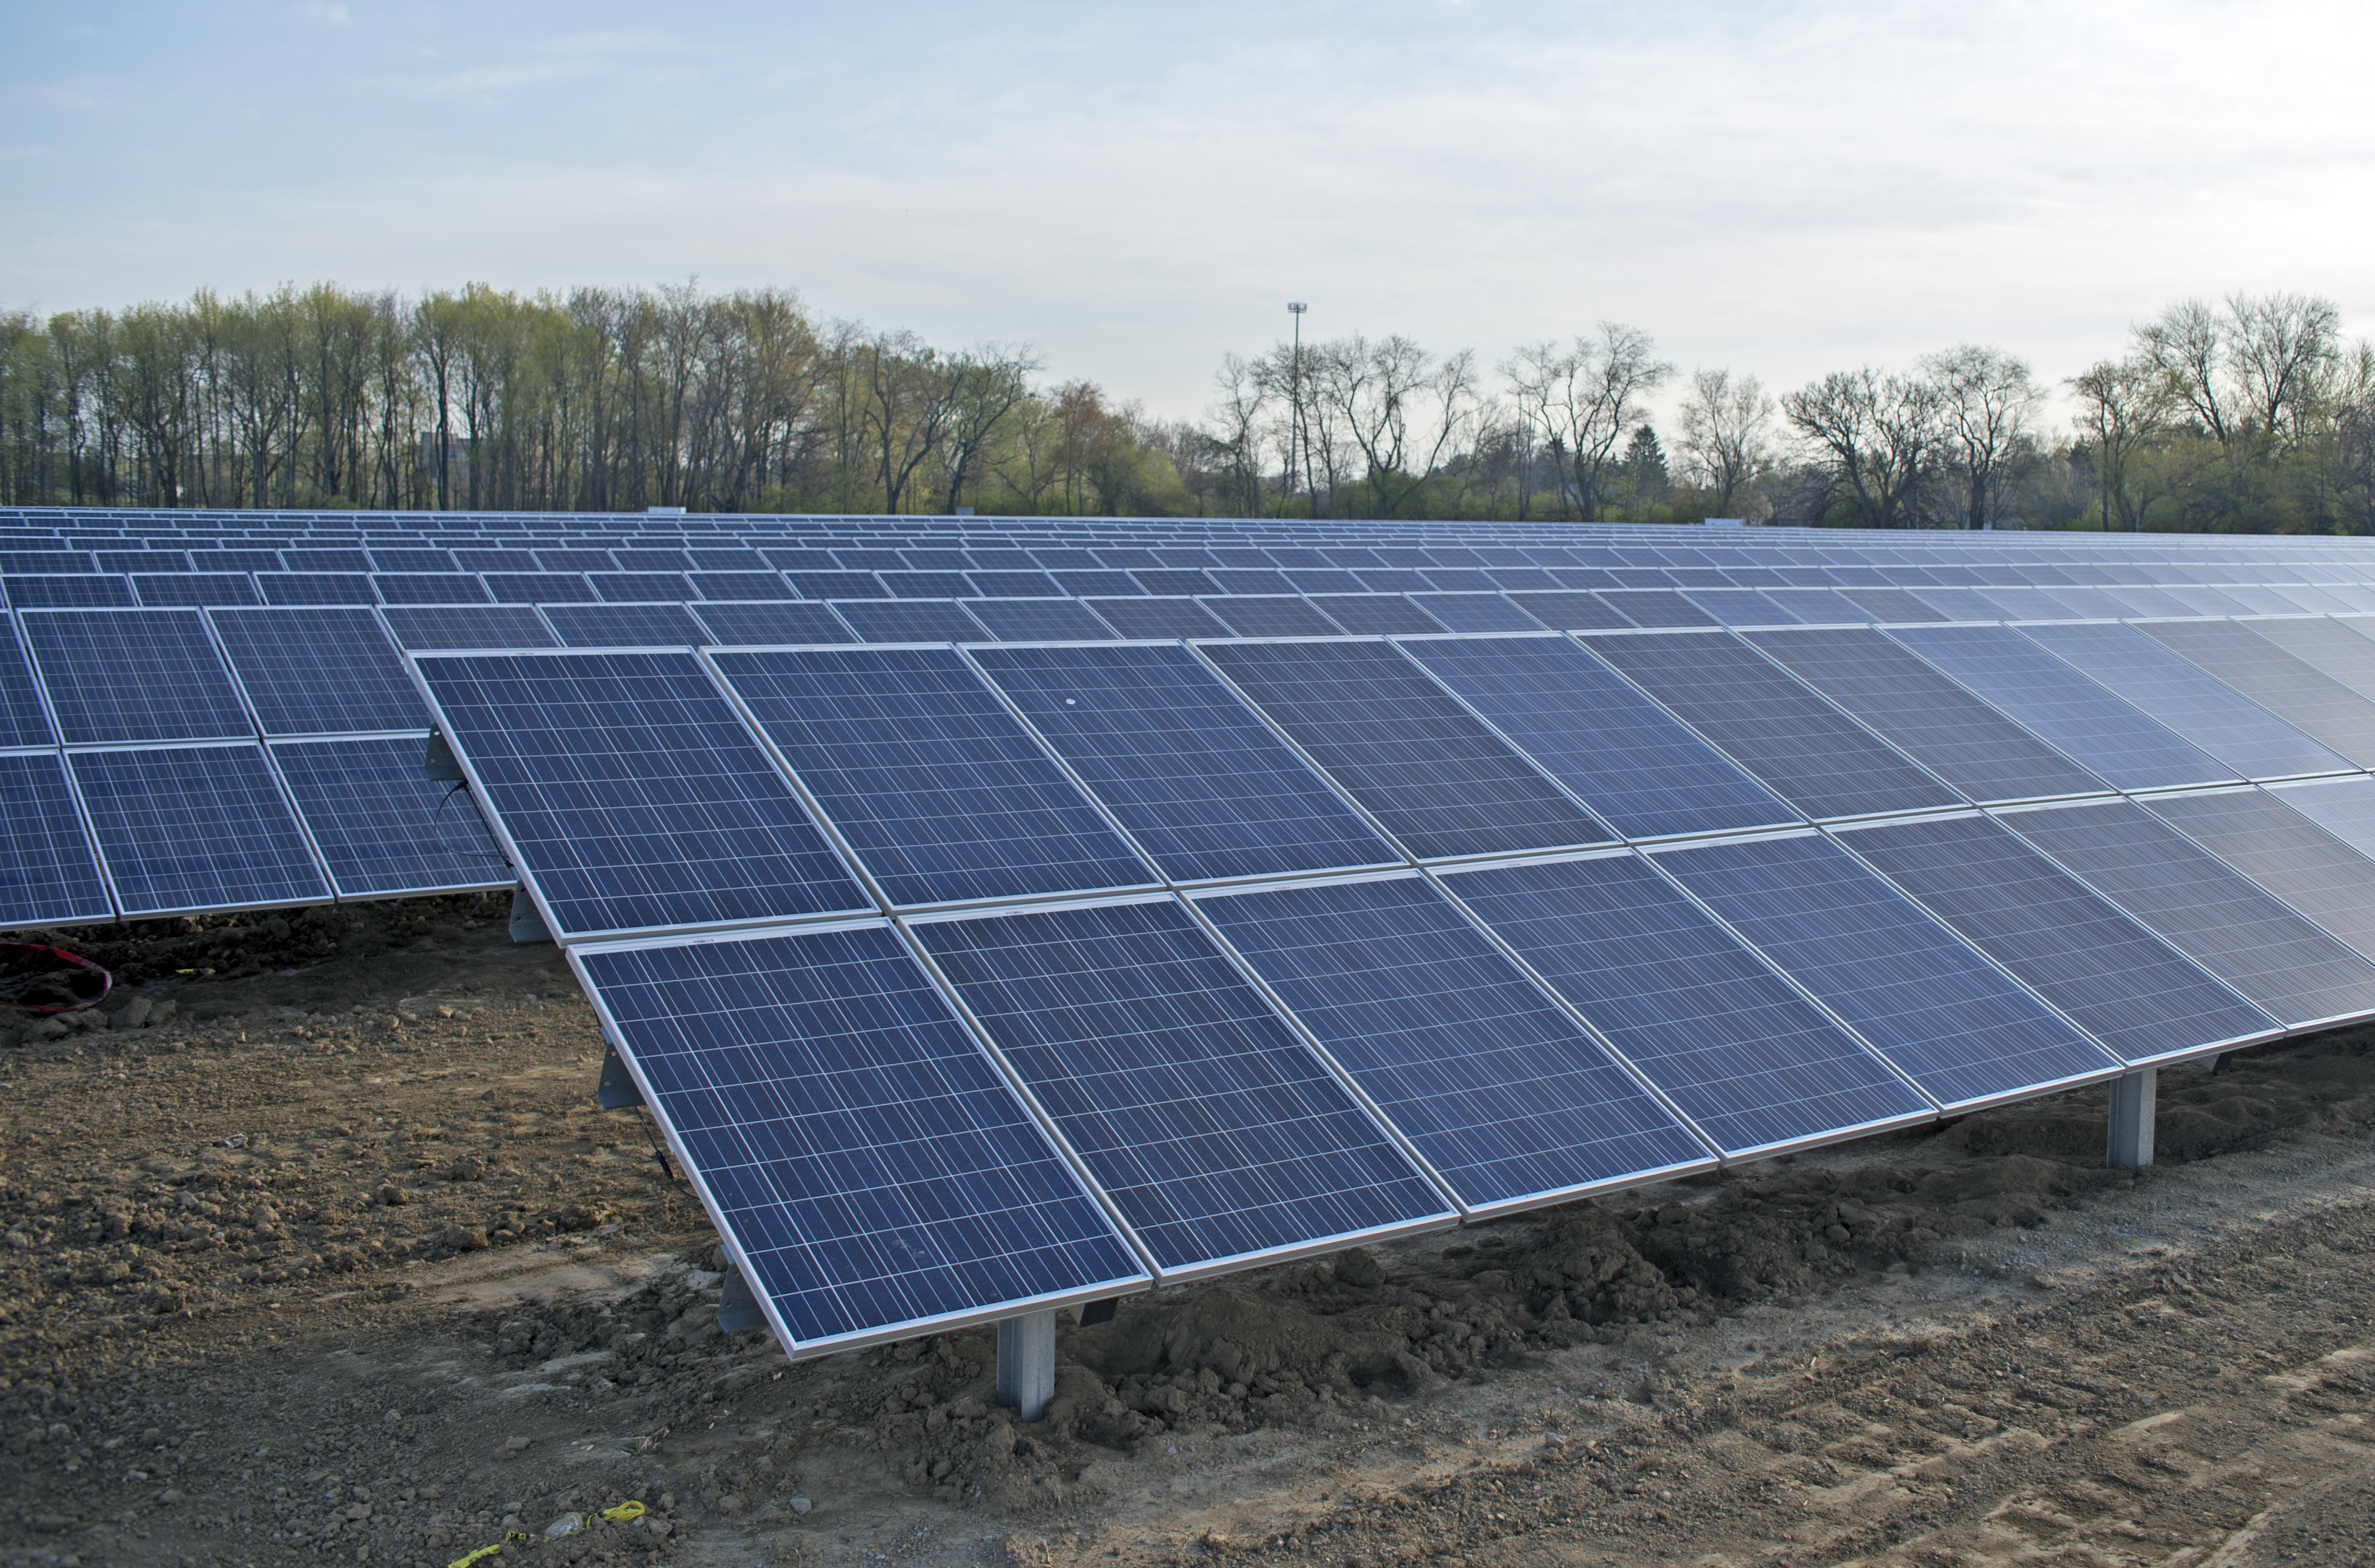 Cedarville University will dedicate its large scale solar power system that will convert sunlight into clean electricity to help meet the campus' growing power requirements on Friday, April 26, at 1 p.m.